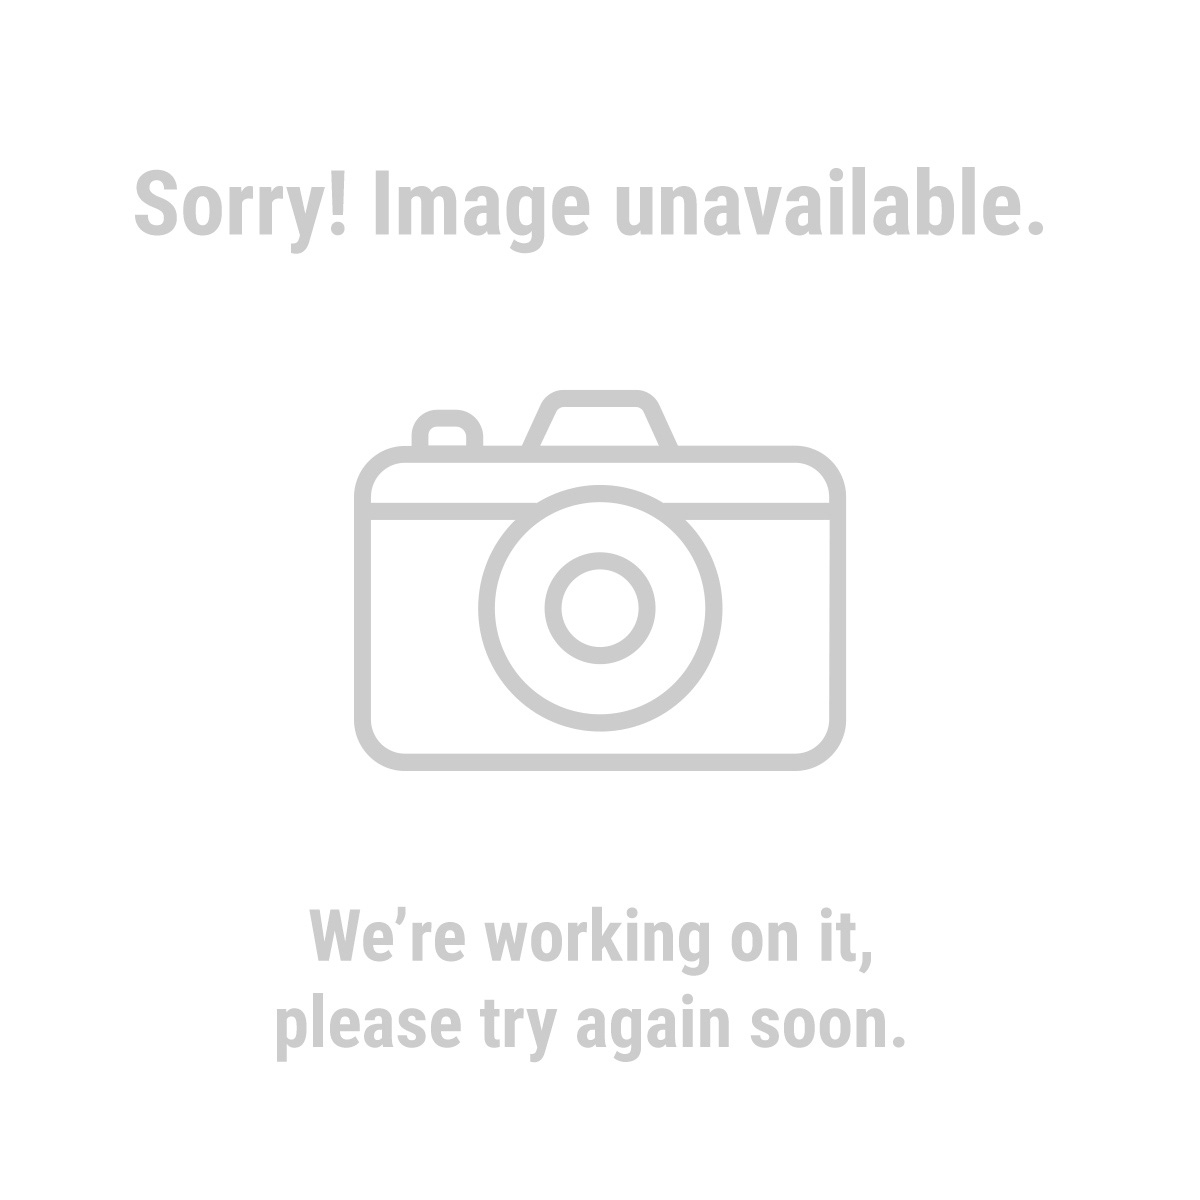 Haul-Master 60731 Capacity Pickup Truck Crane with Cable Winch